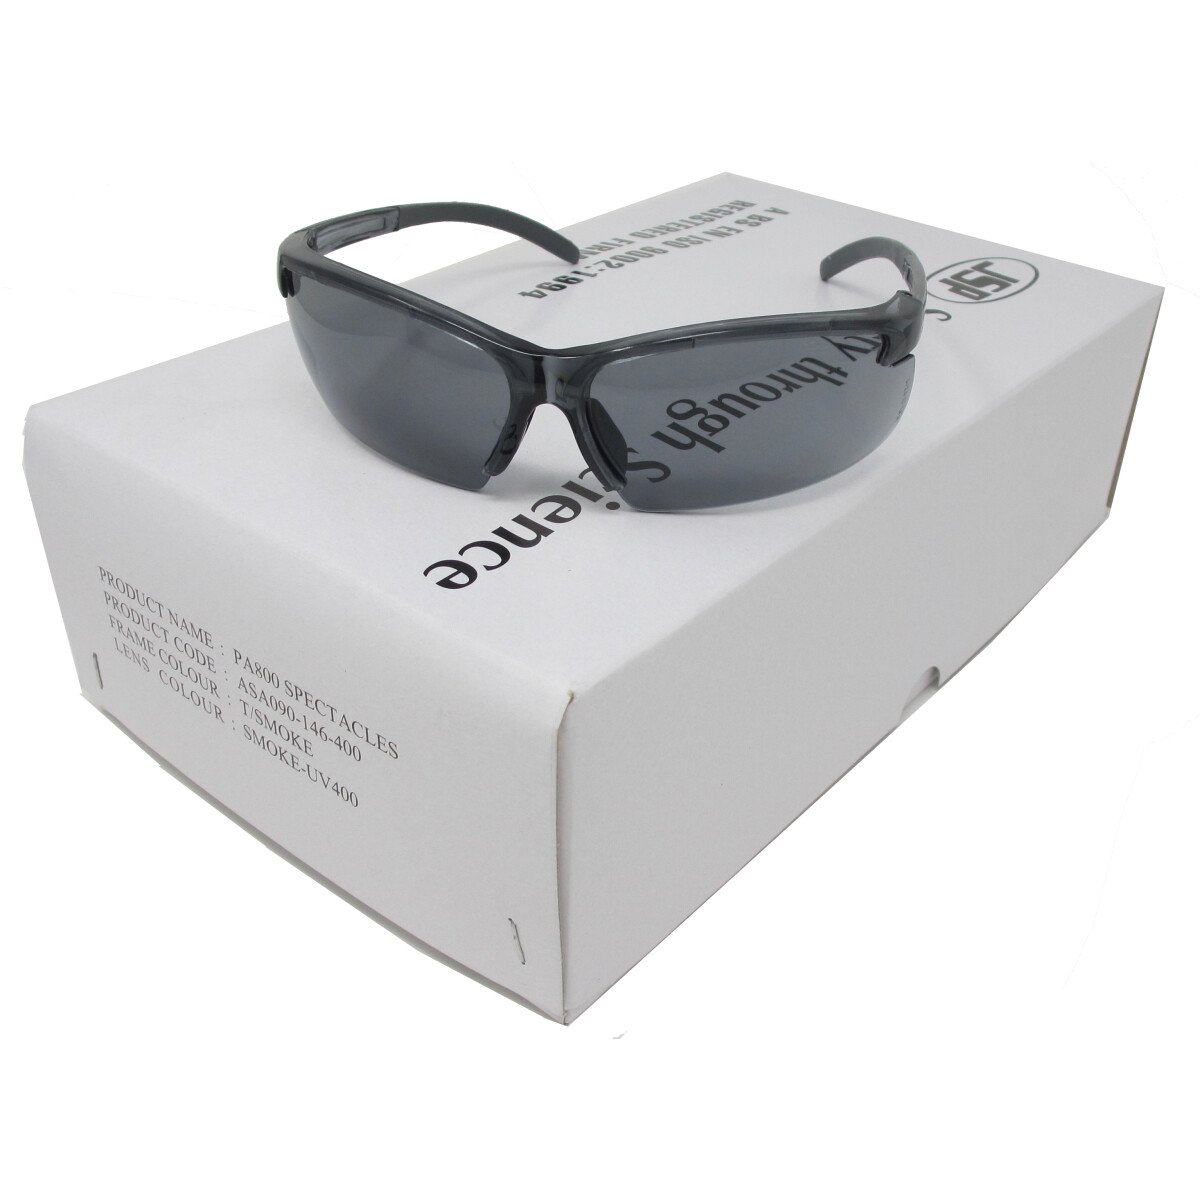 JSP ASA090-146-400 Panorama 800 Safety Spectacles with Smoke Tinted Lenses (Box of 10 pairs)